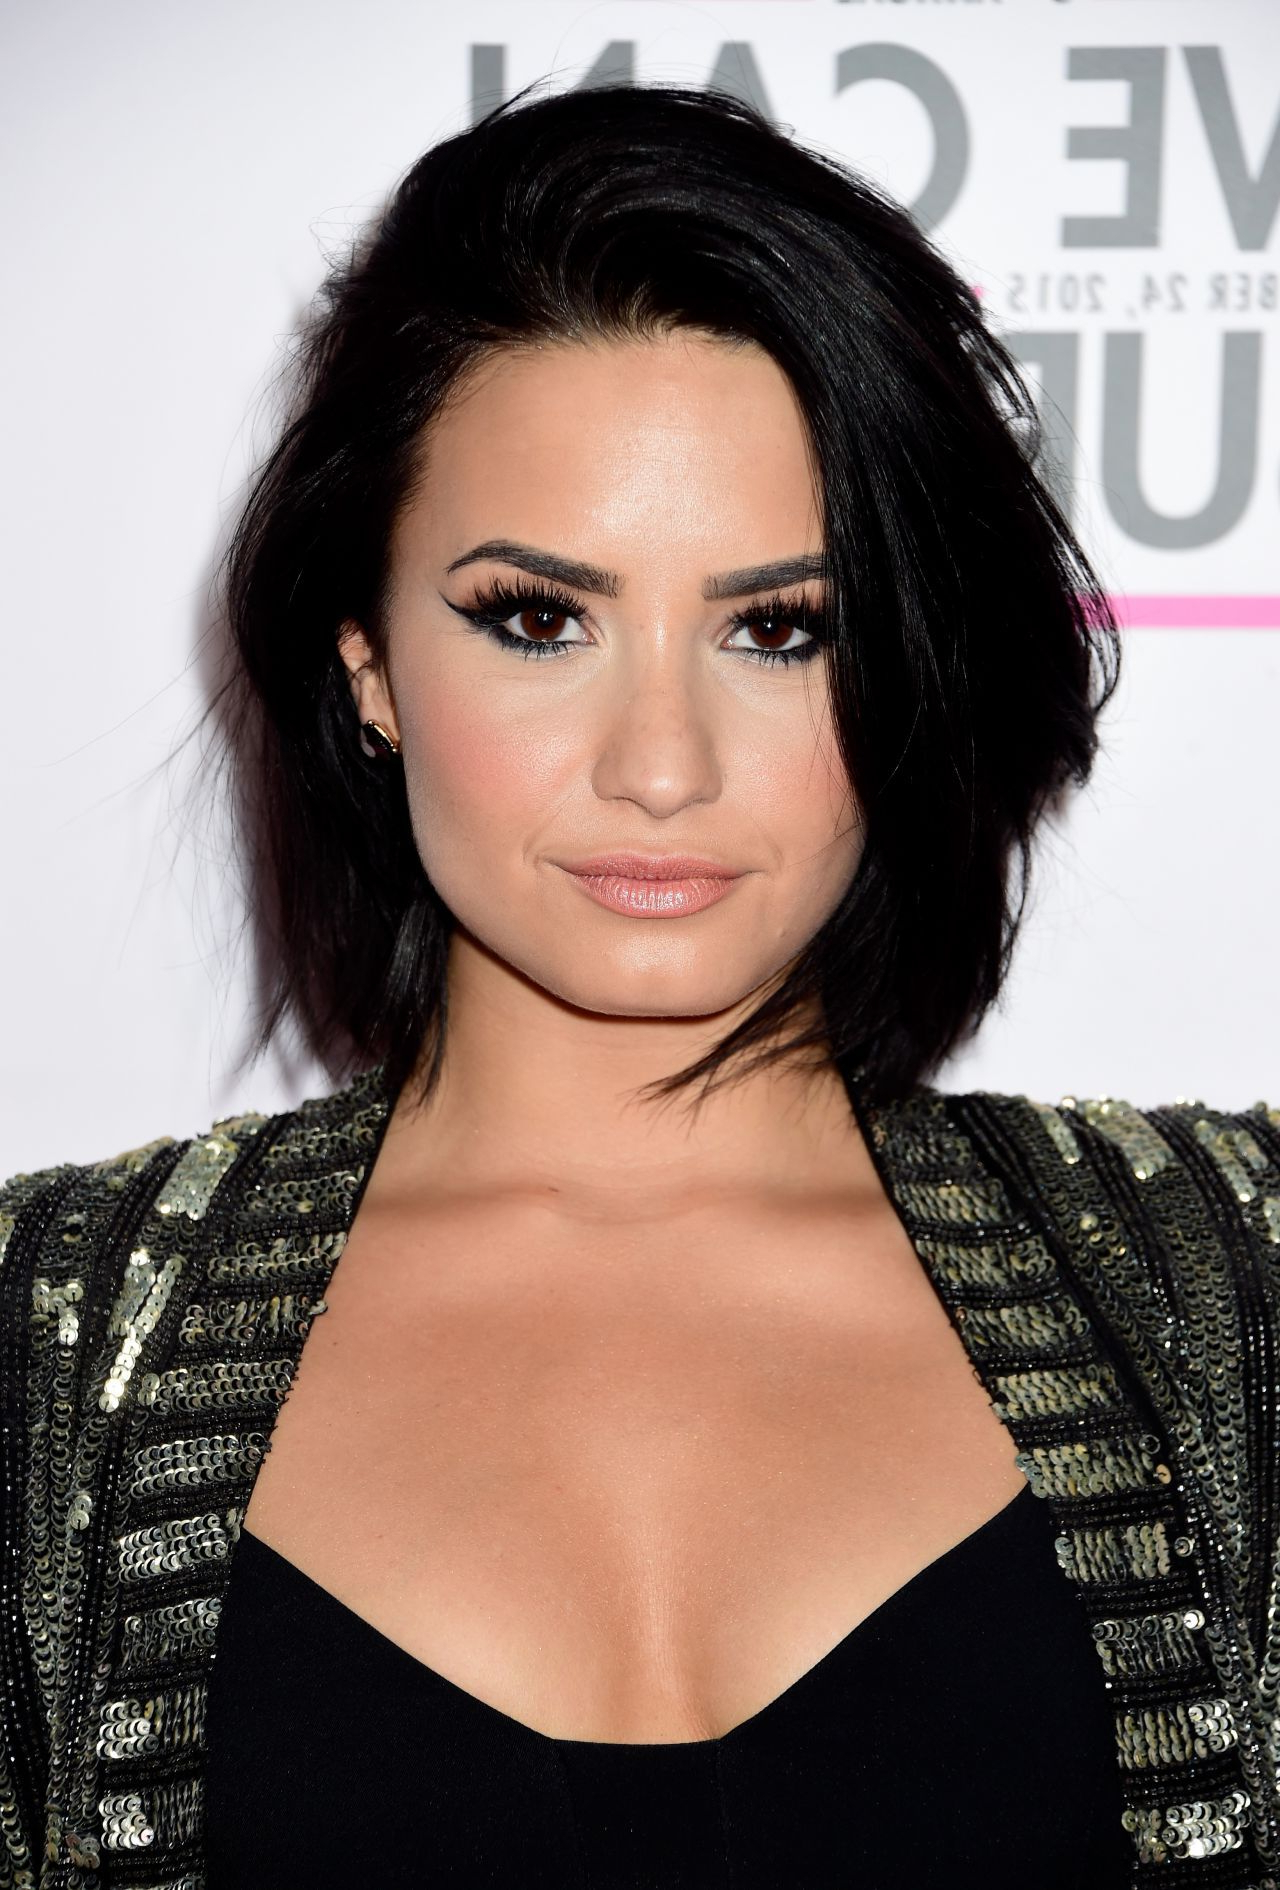 30 Crazy Cute Short Hairstyles For Women With Thick Hair | Fashion With Regard To Demi Lovato Short Hairstyles (View 5 of 25)